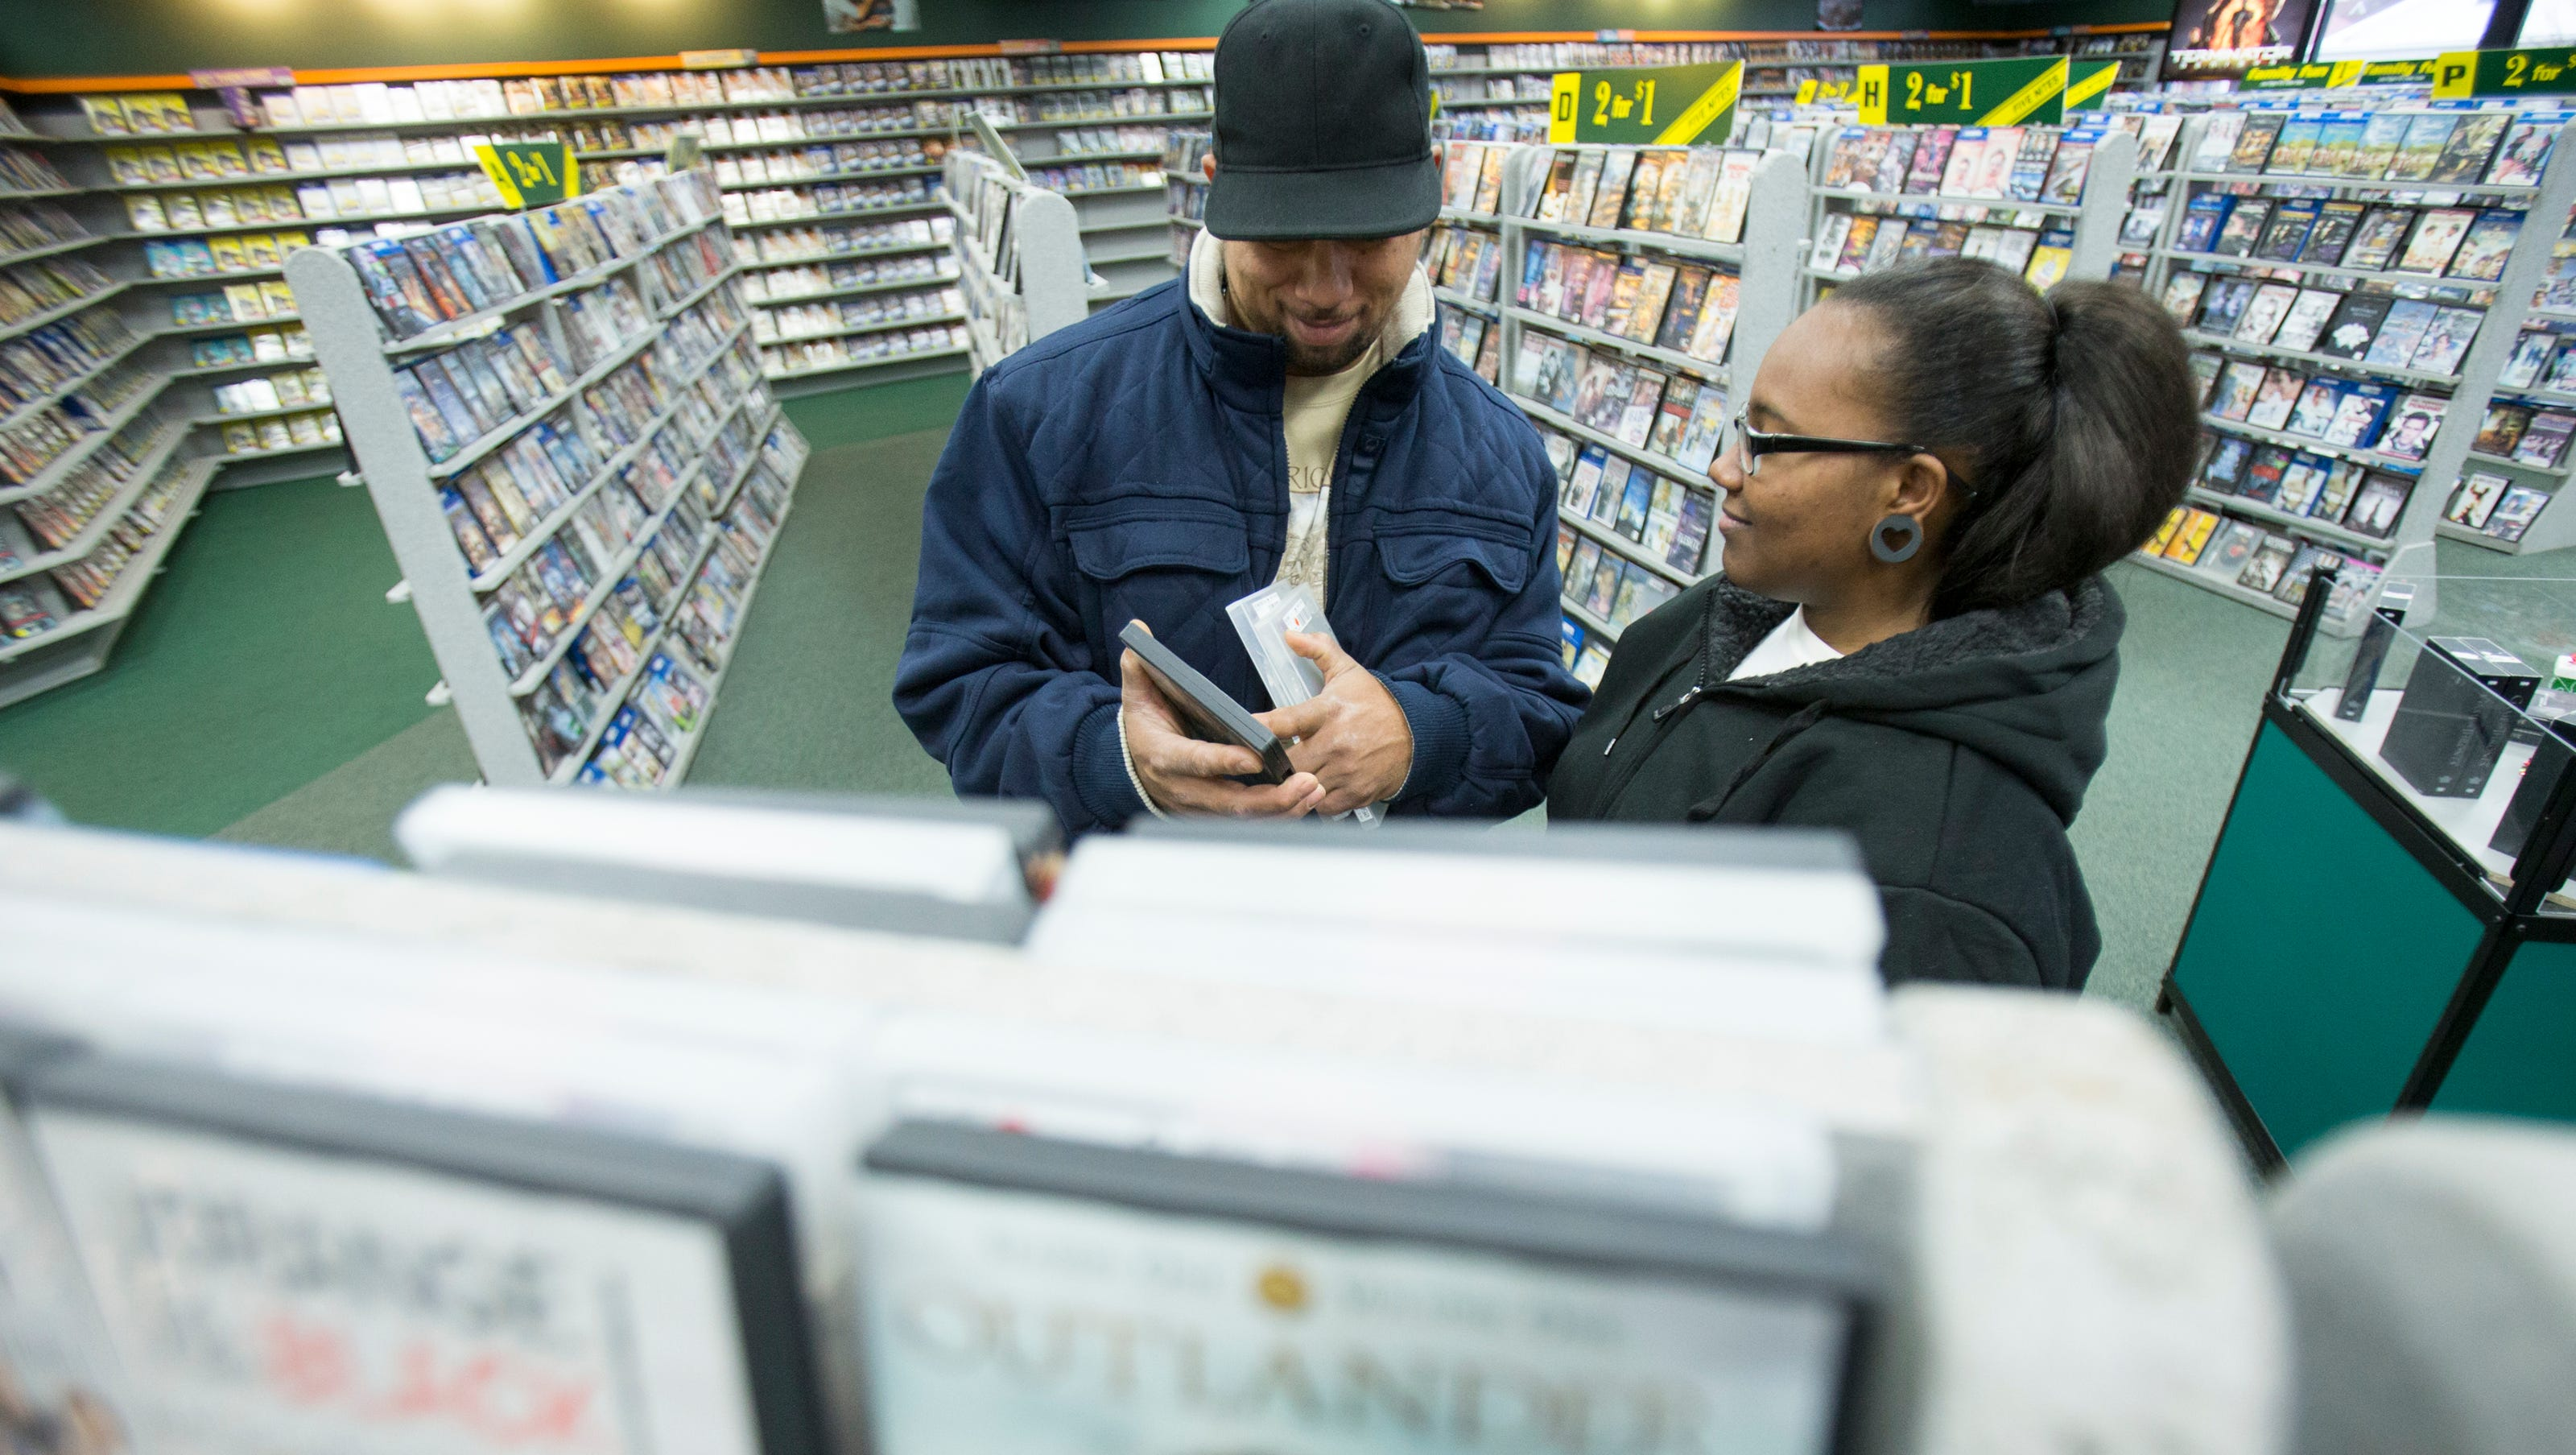 For Some Video Stores Still Alive And Well